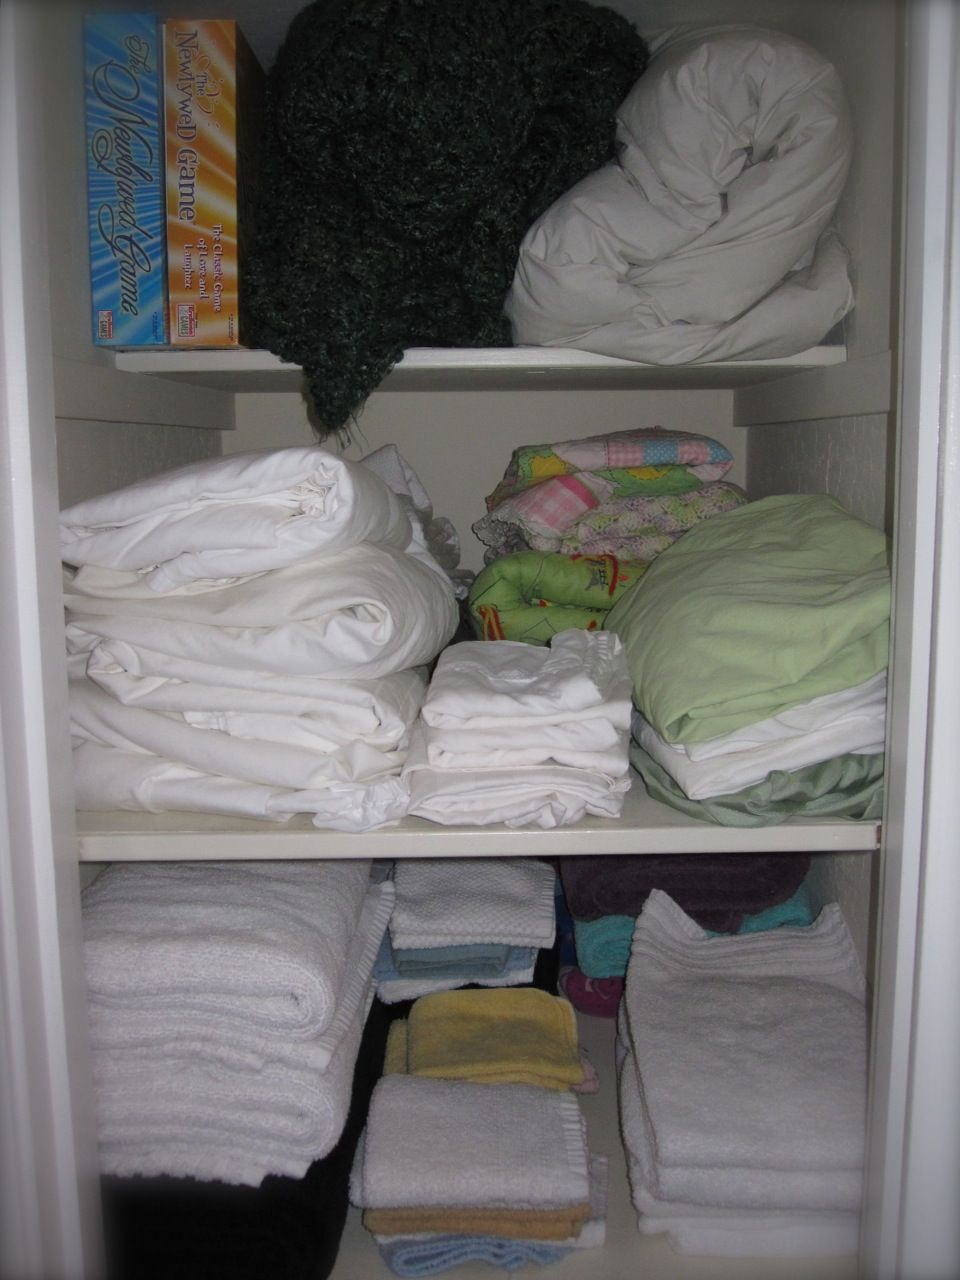 Tips For How To Organize Deep Shelves In The Pantry And Linen Closet